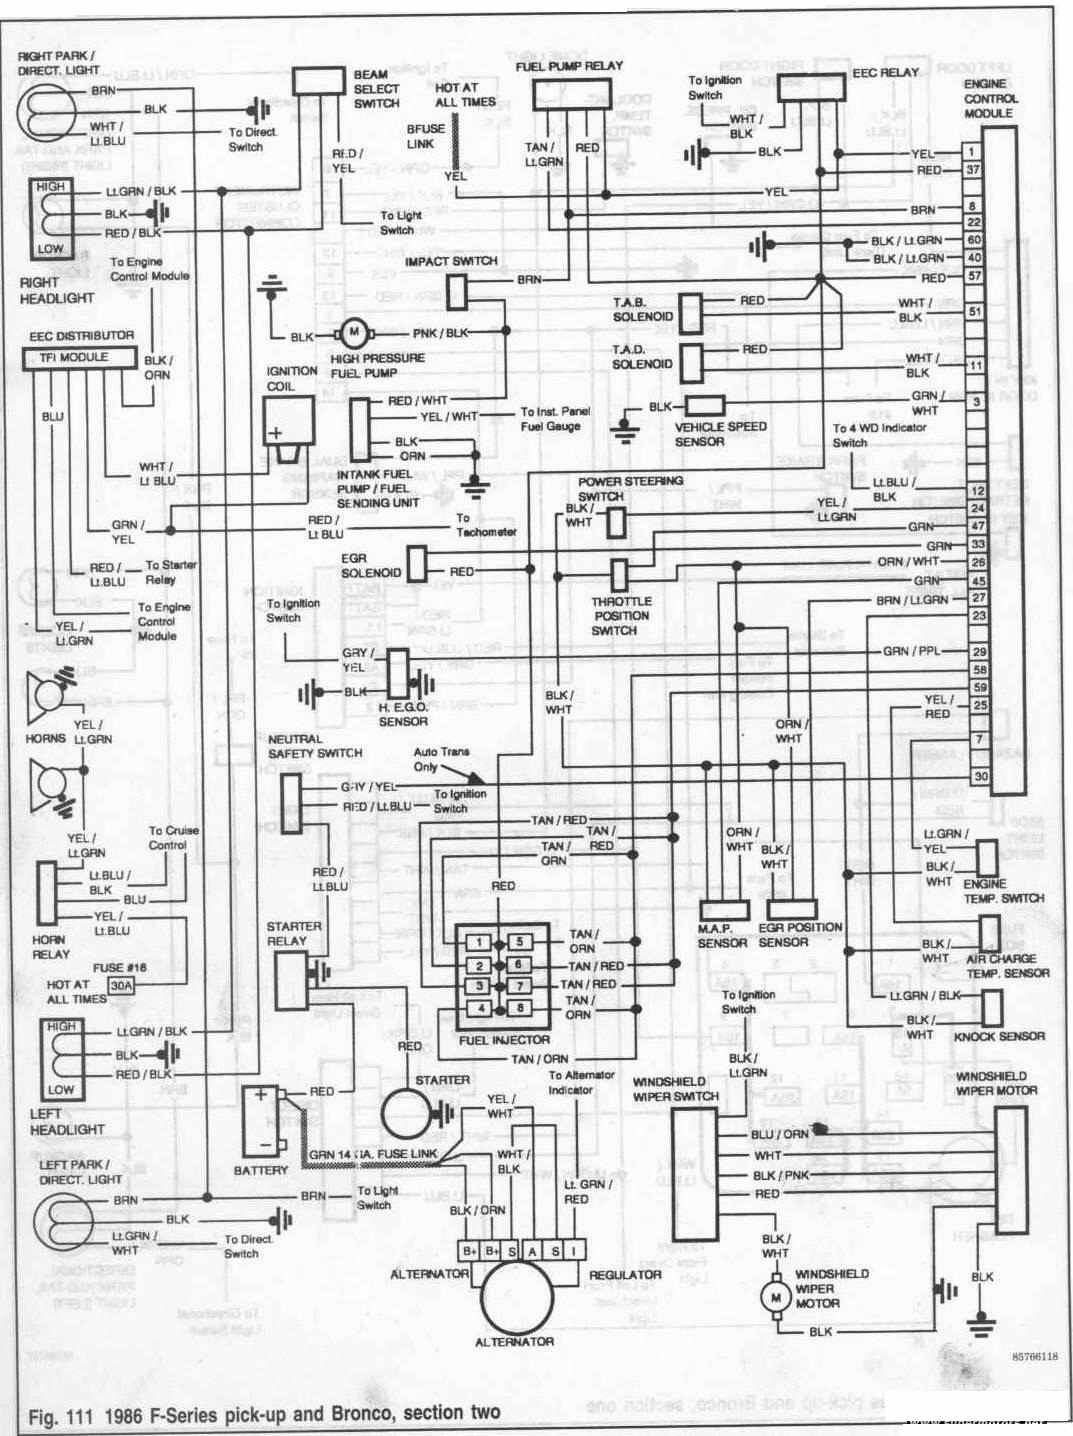 Ford Bronco and FSeries Pickup 1986 Engine Control Module Wiring Diagram | All about Wiring